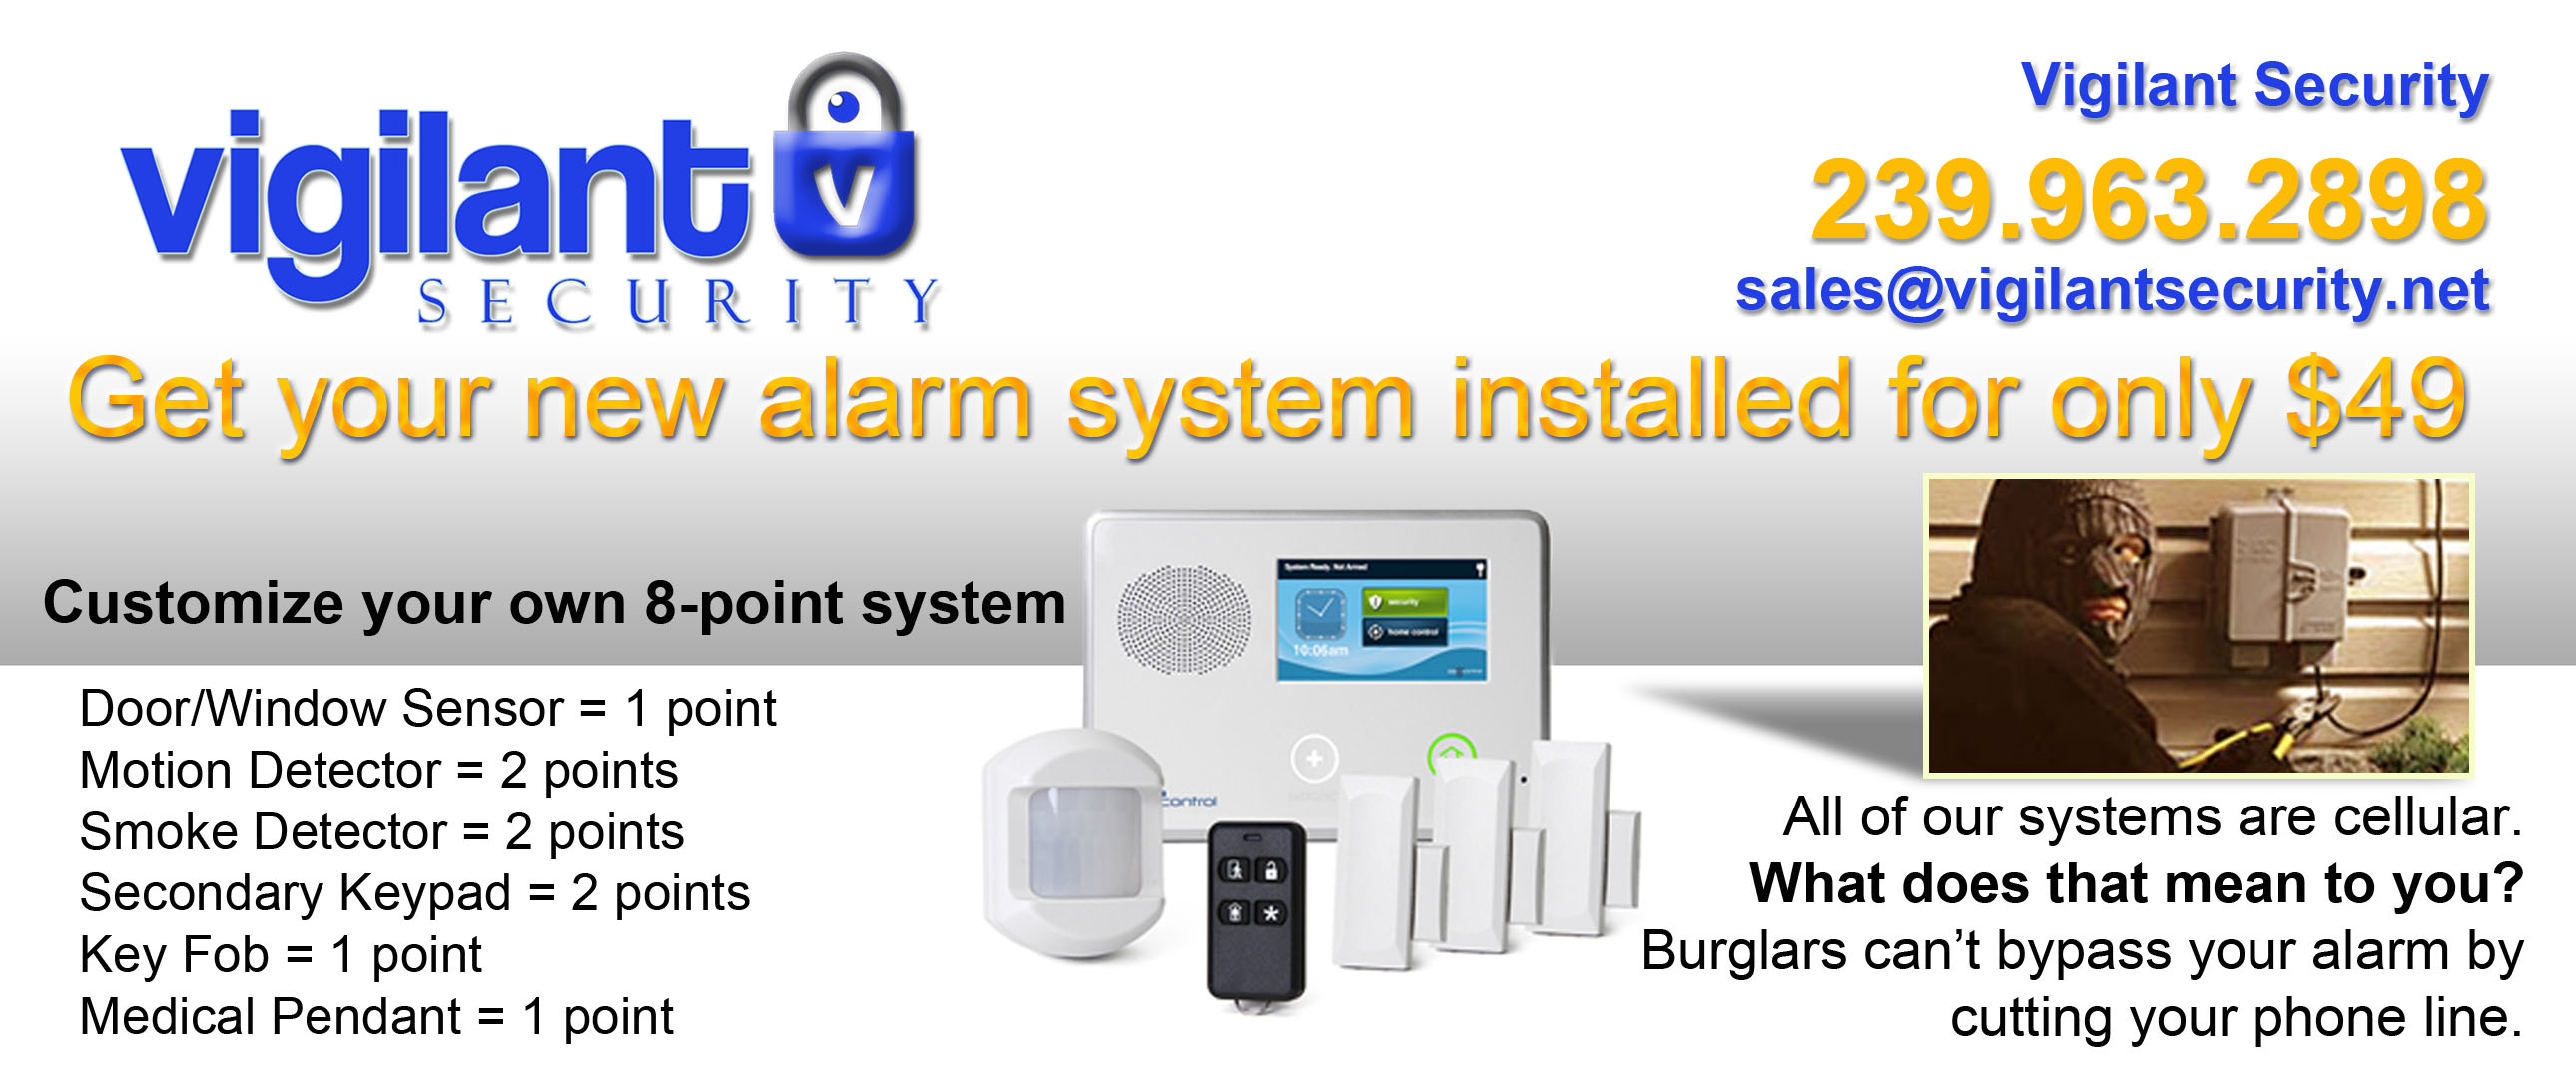 Home Security Naples FL | Current Offer